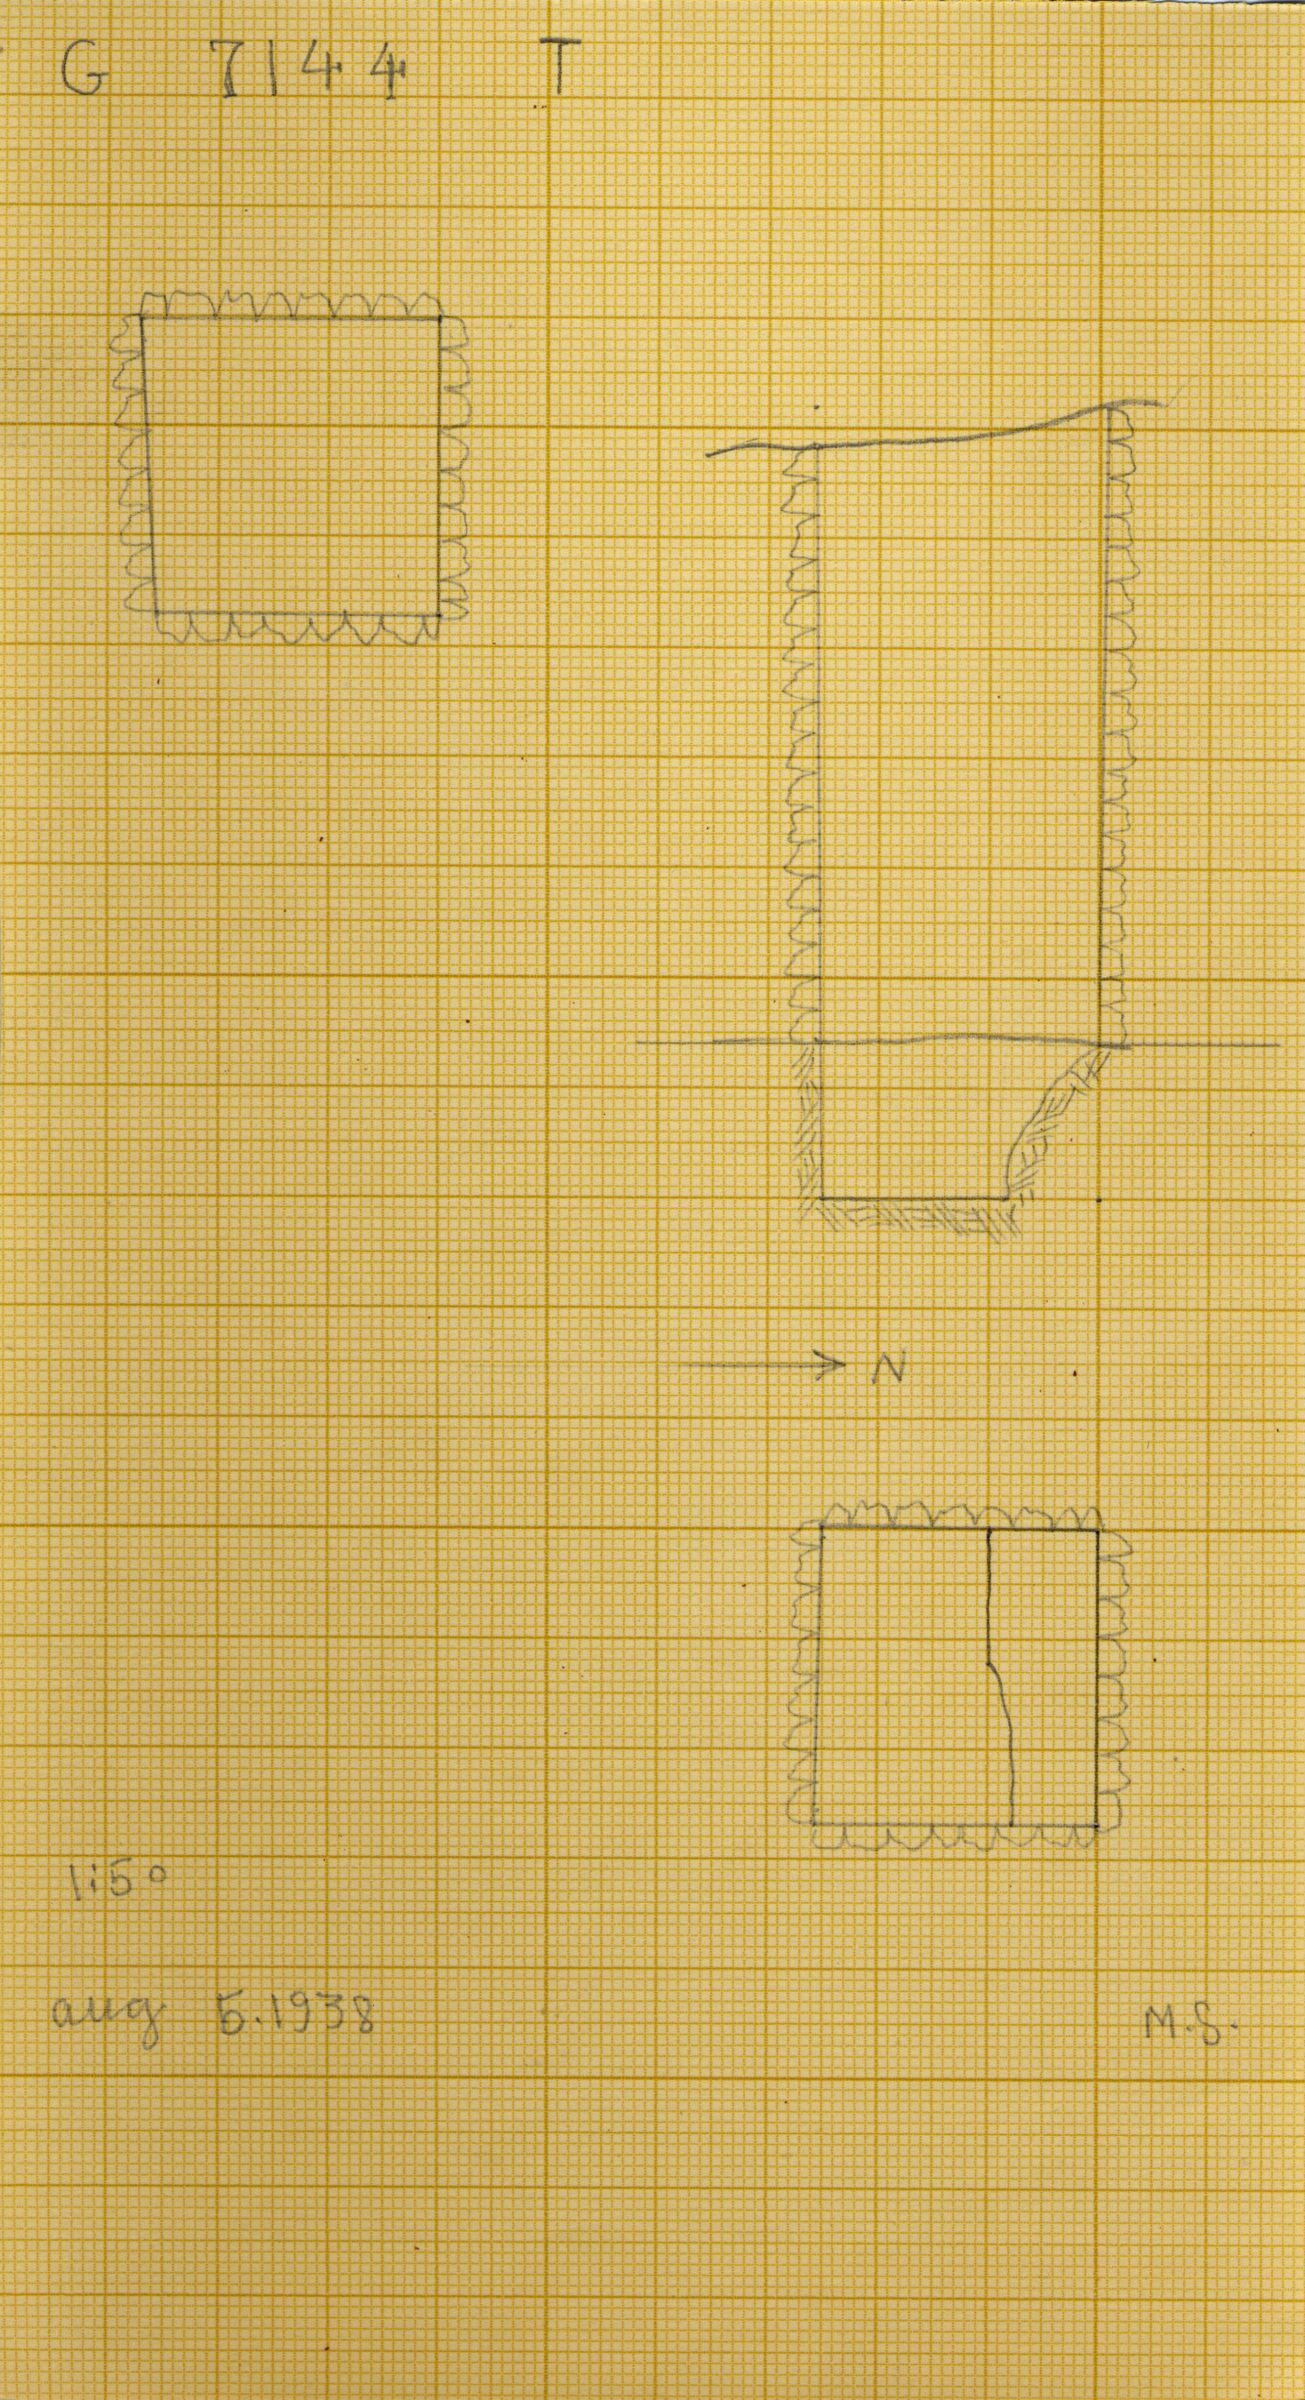 Maps and plans: G 7144, Shaft T